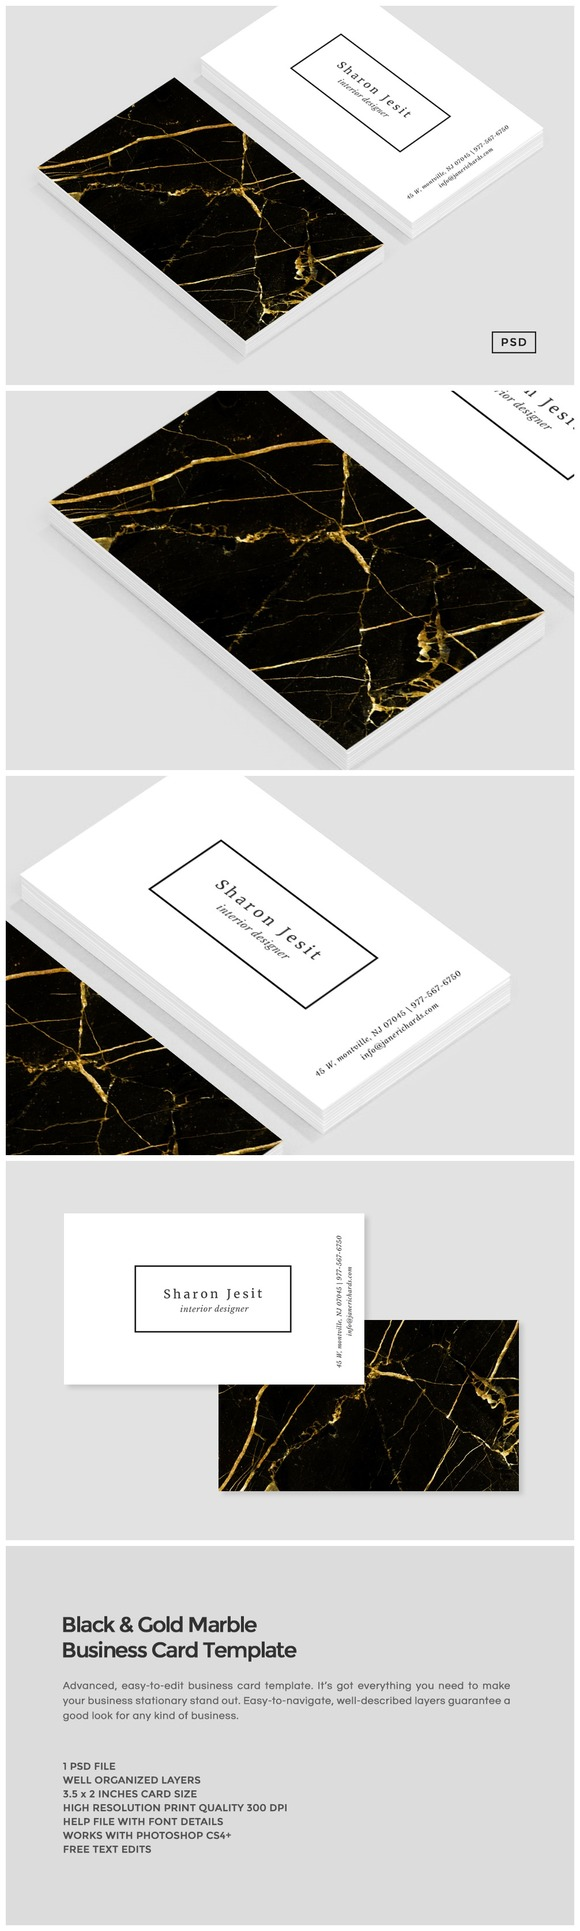 Black Gold Marble Business Card